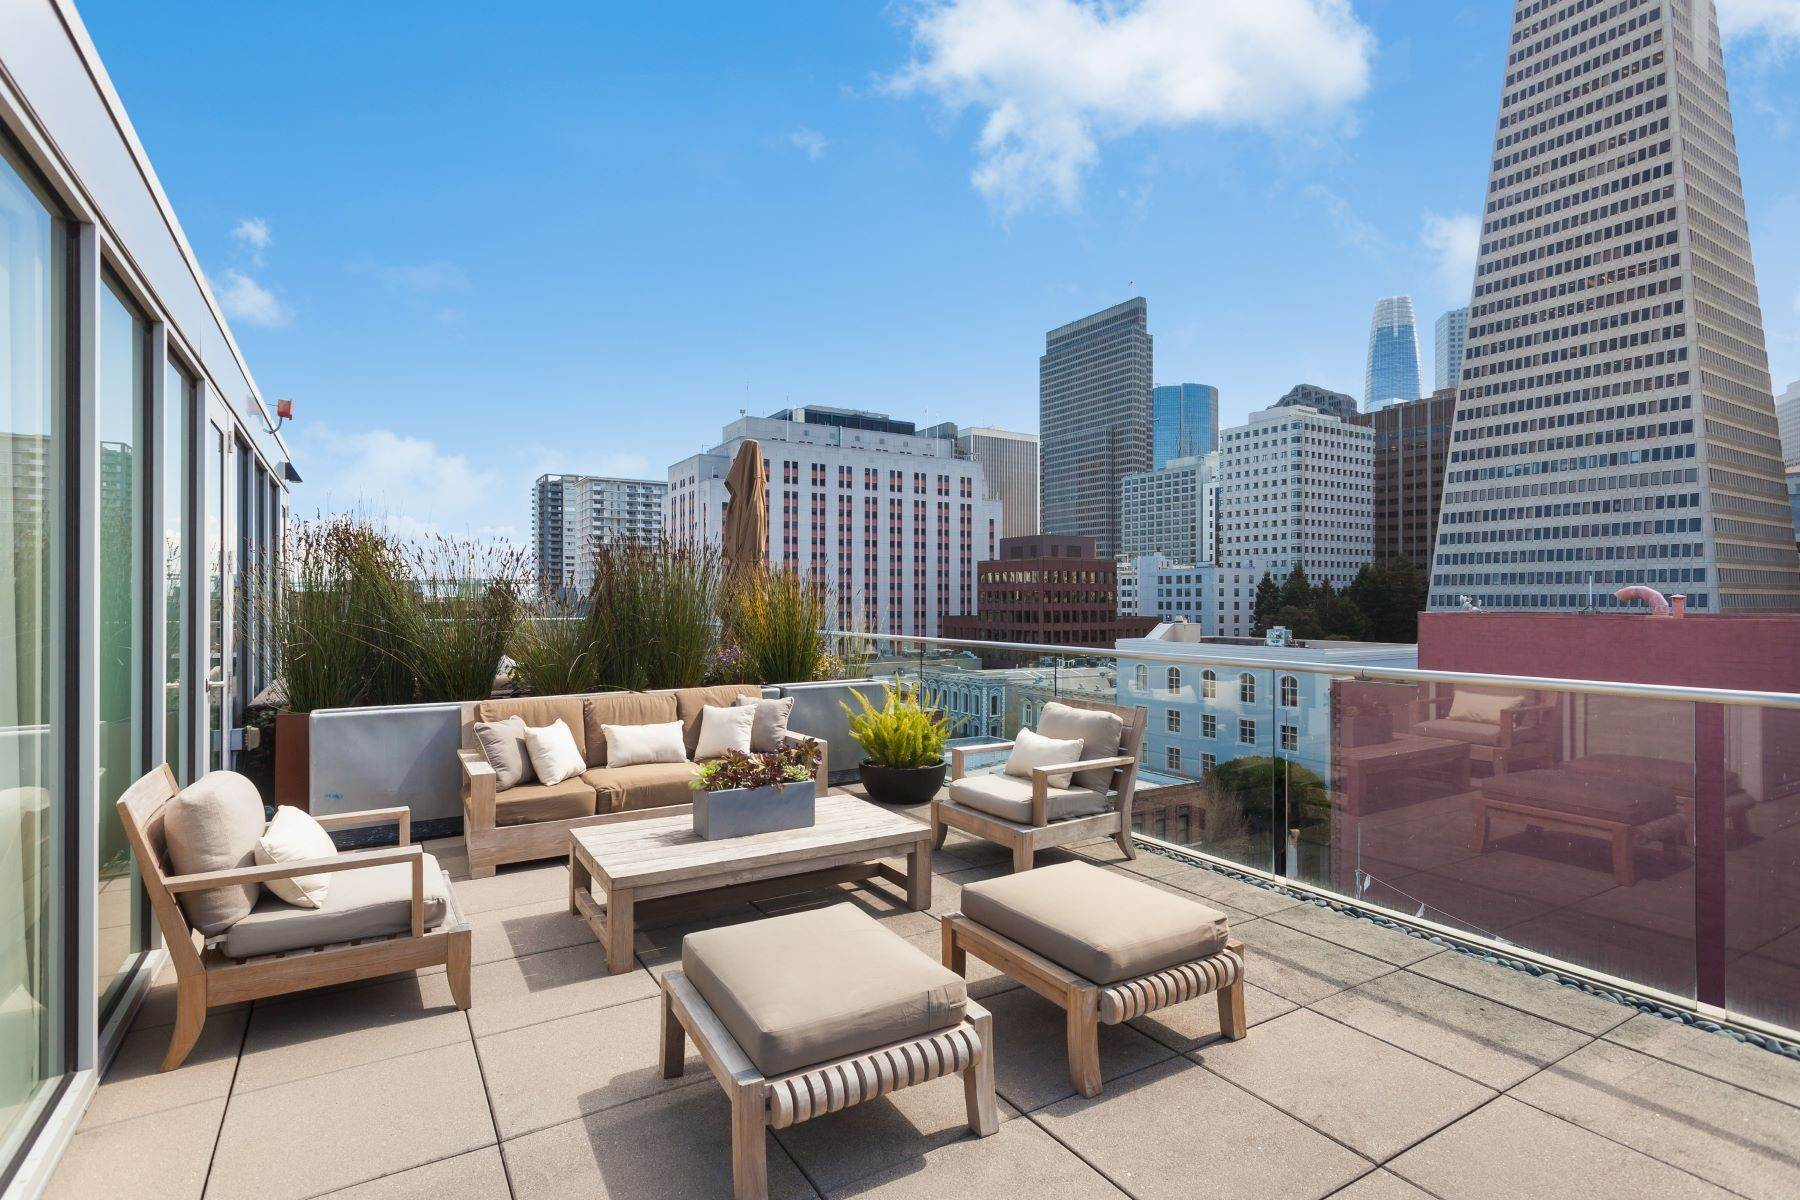 Condominiums at Jackson Square Penthouse 845 Montgomery Street PH2 San Francisco, California 94133 United States